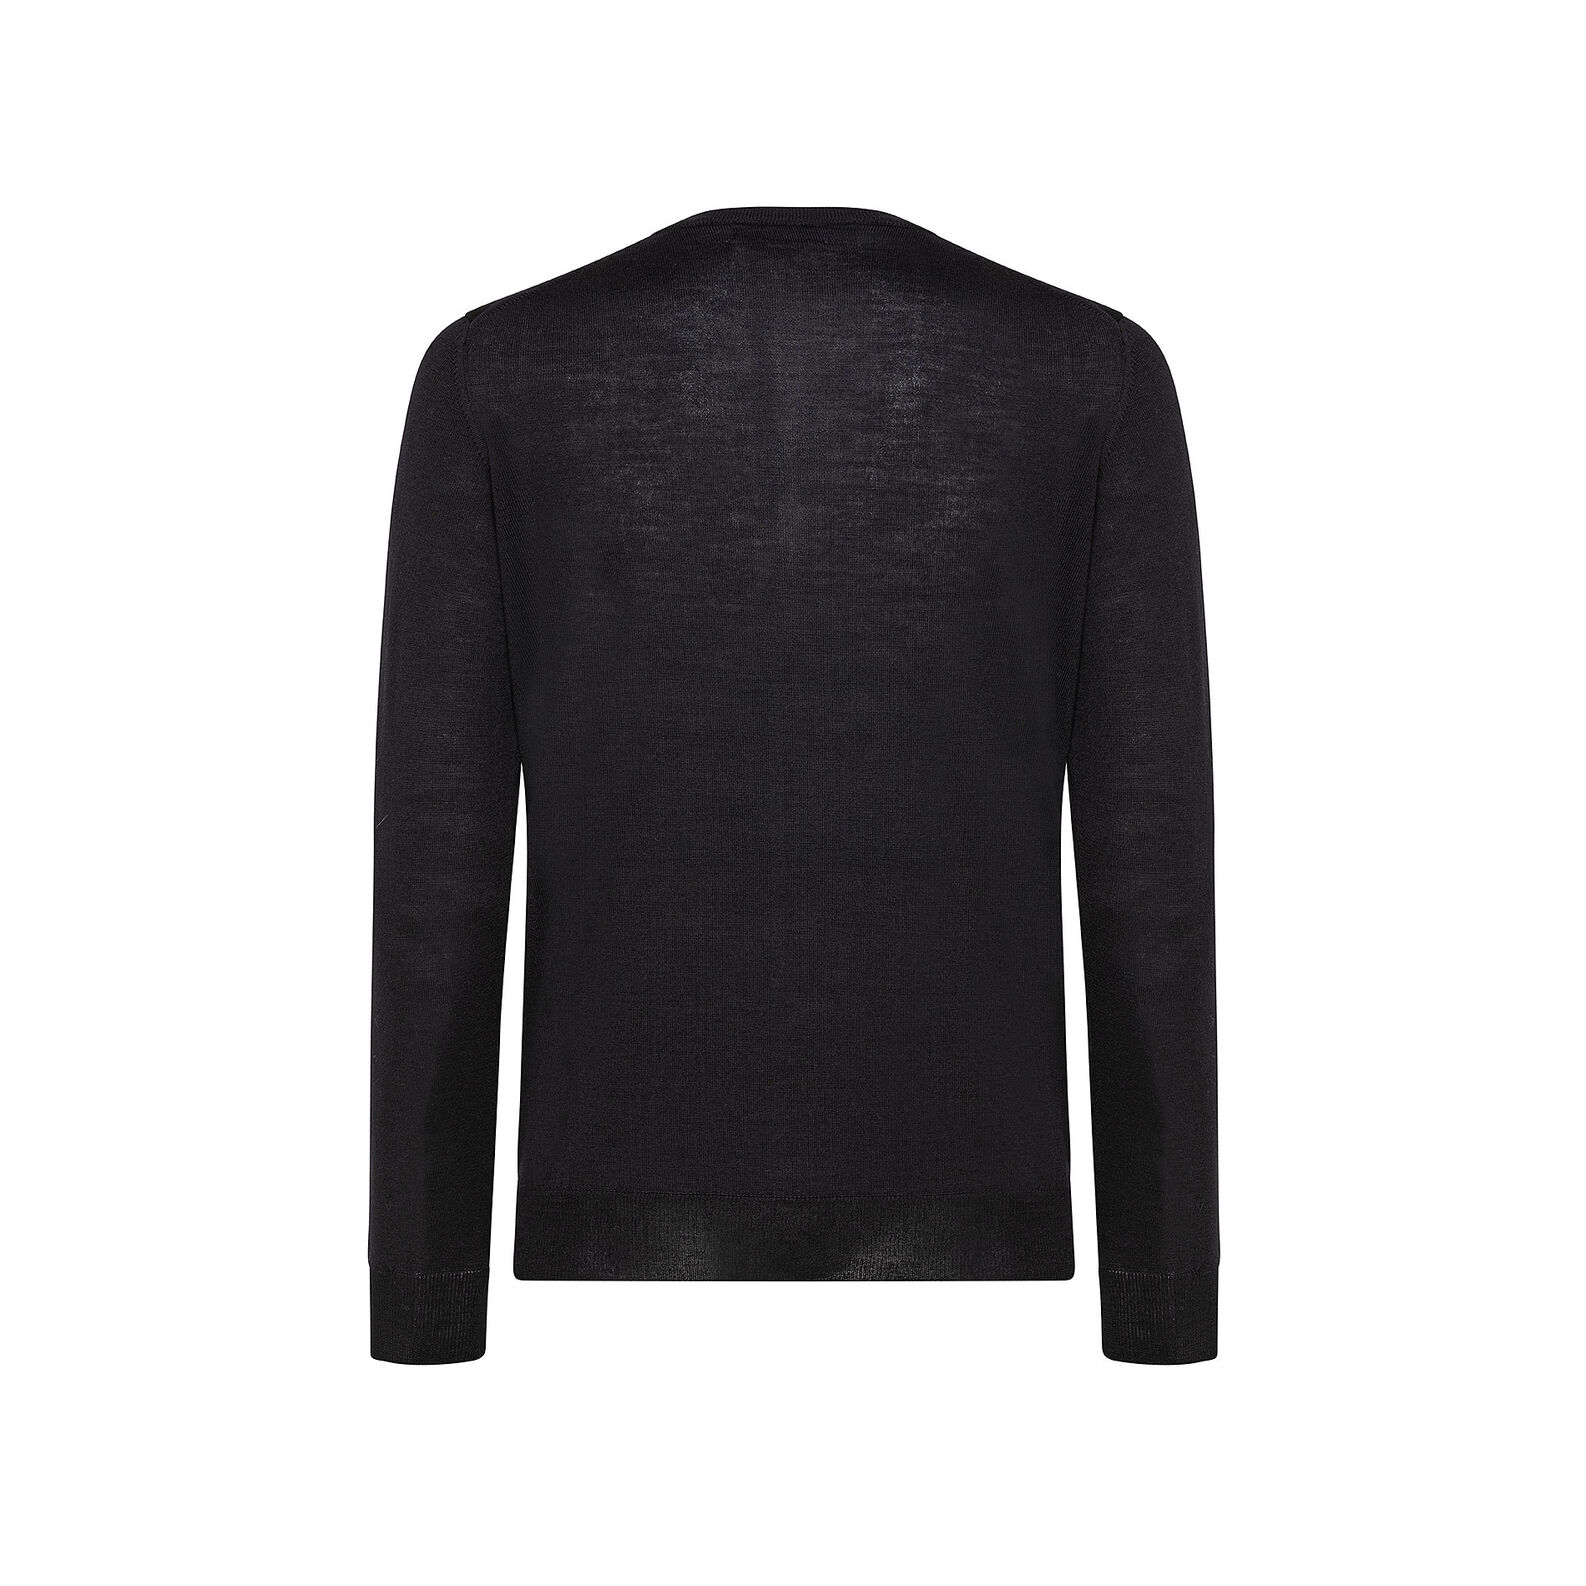 Extra-fine merino wool pullover with round neck